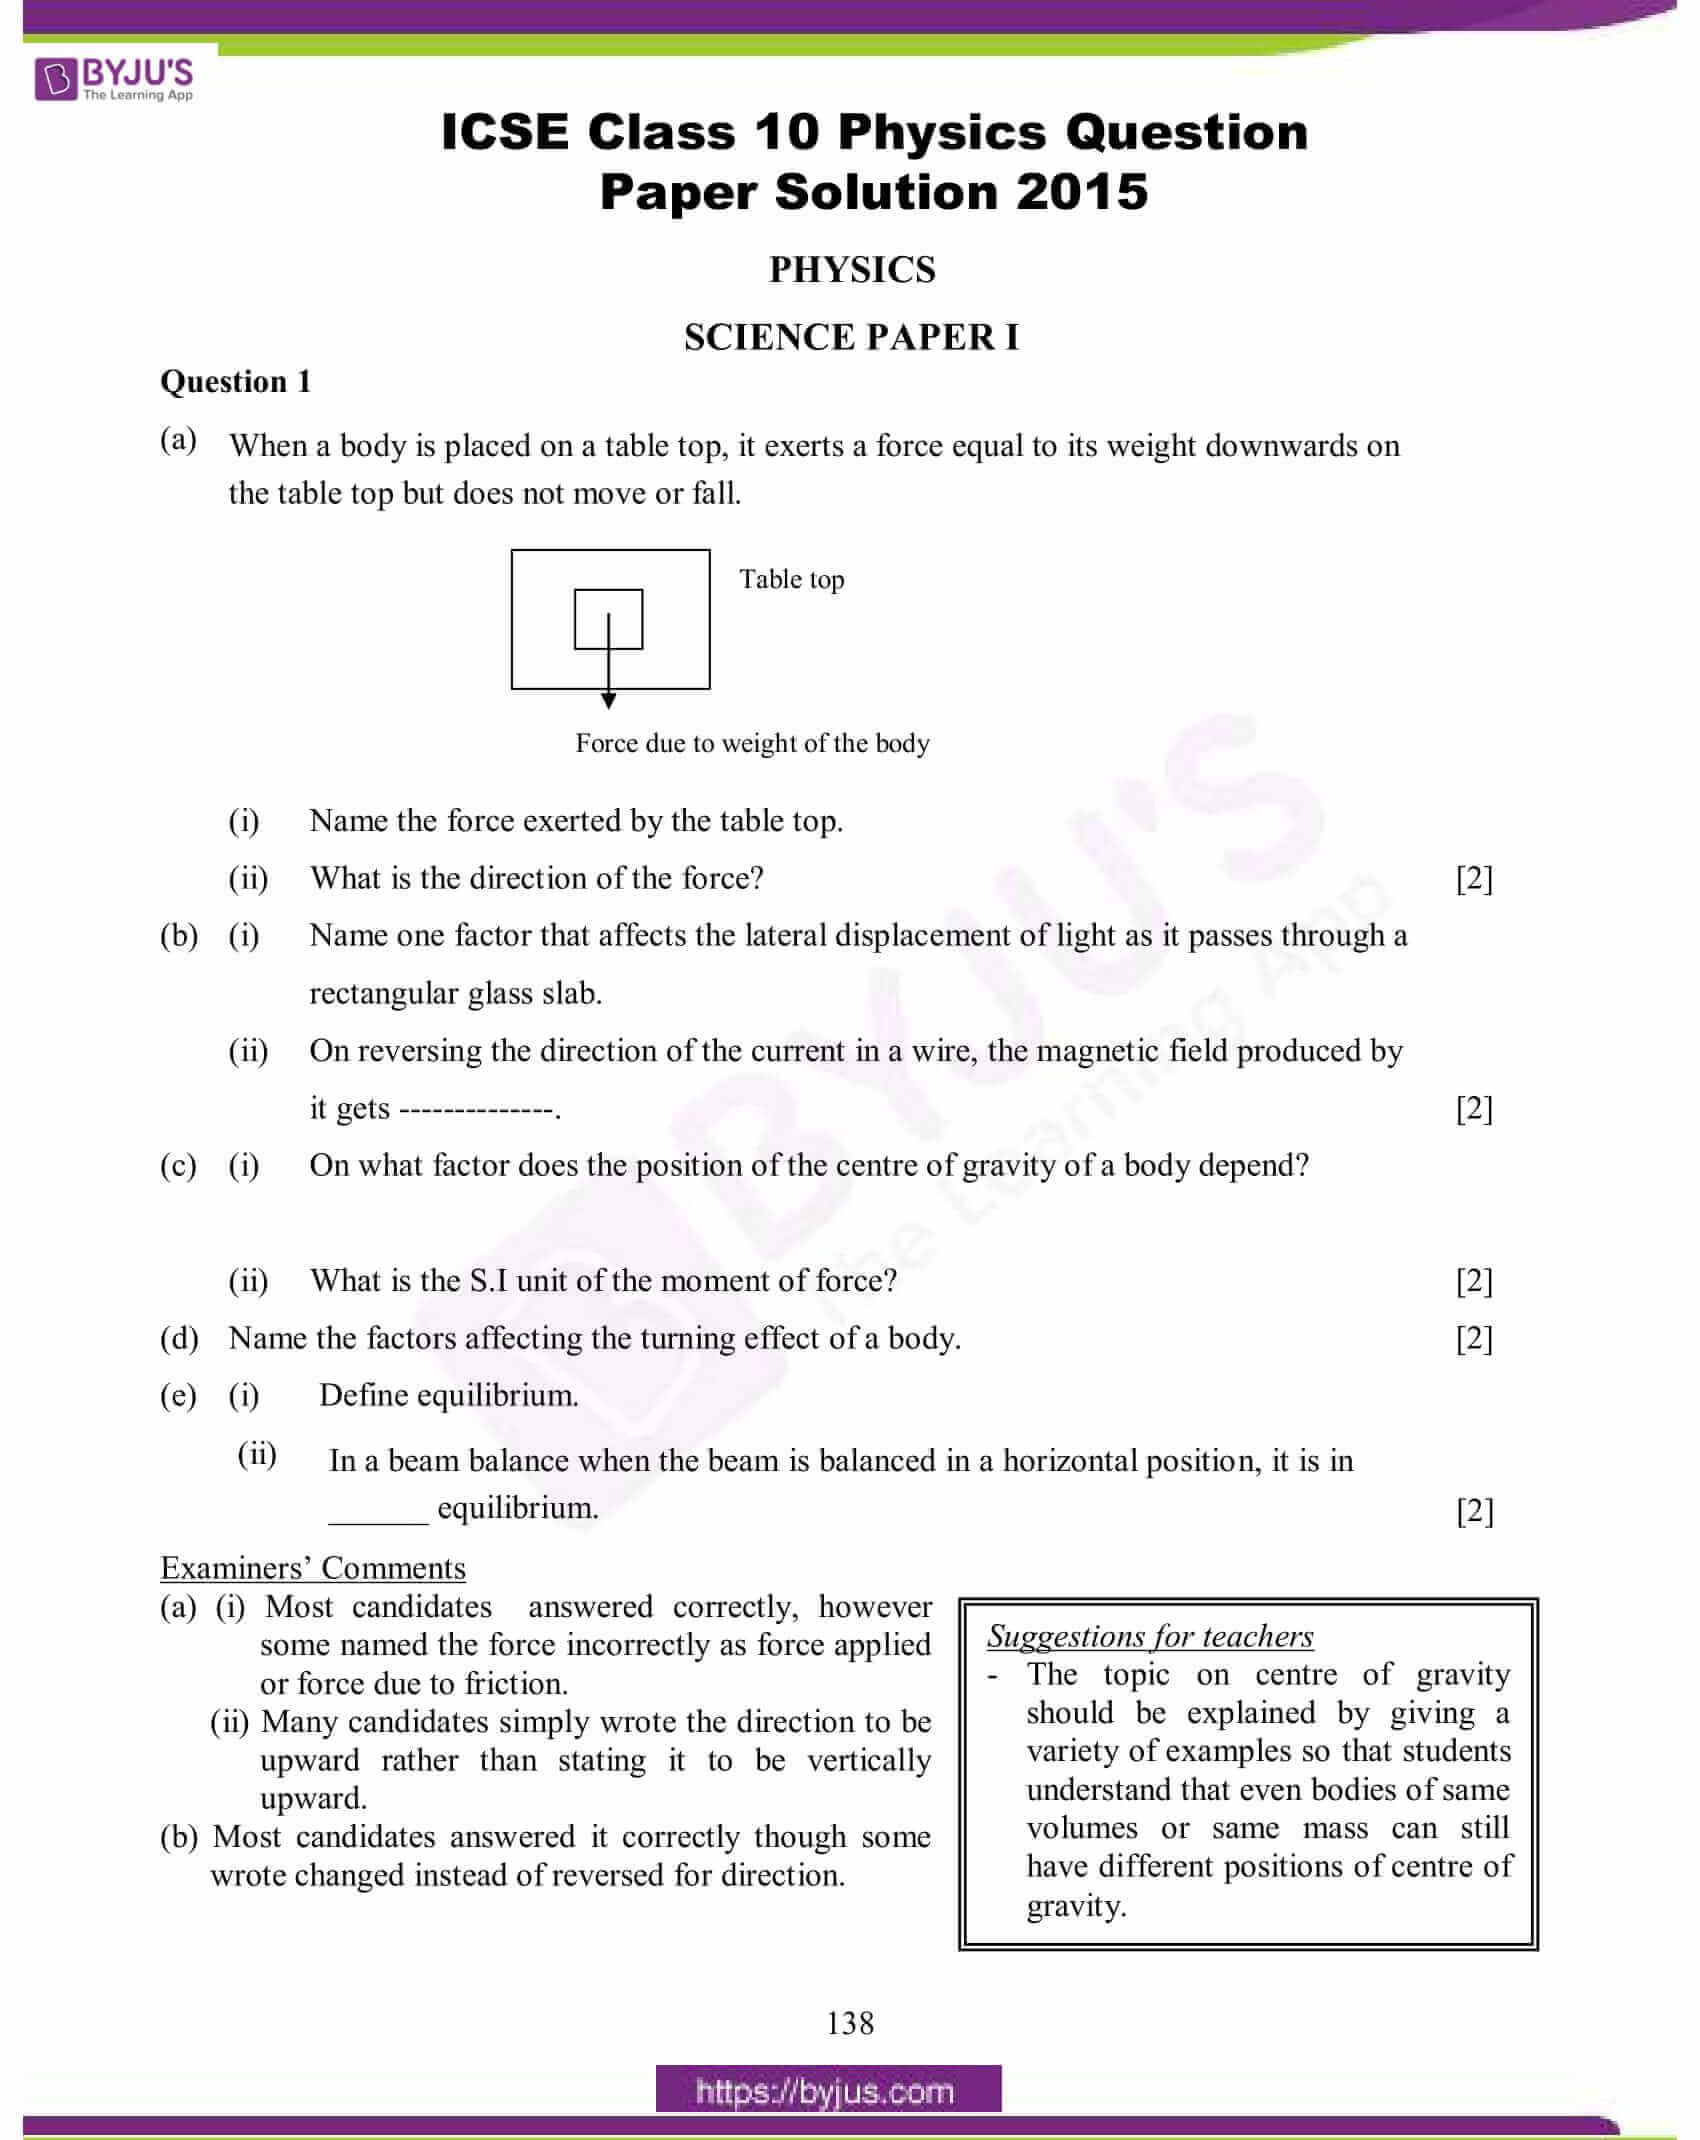 icse class 10 physics question paper solution 2015 01